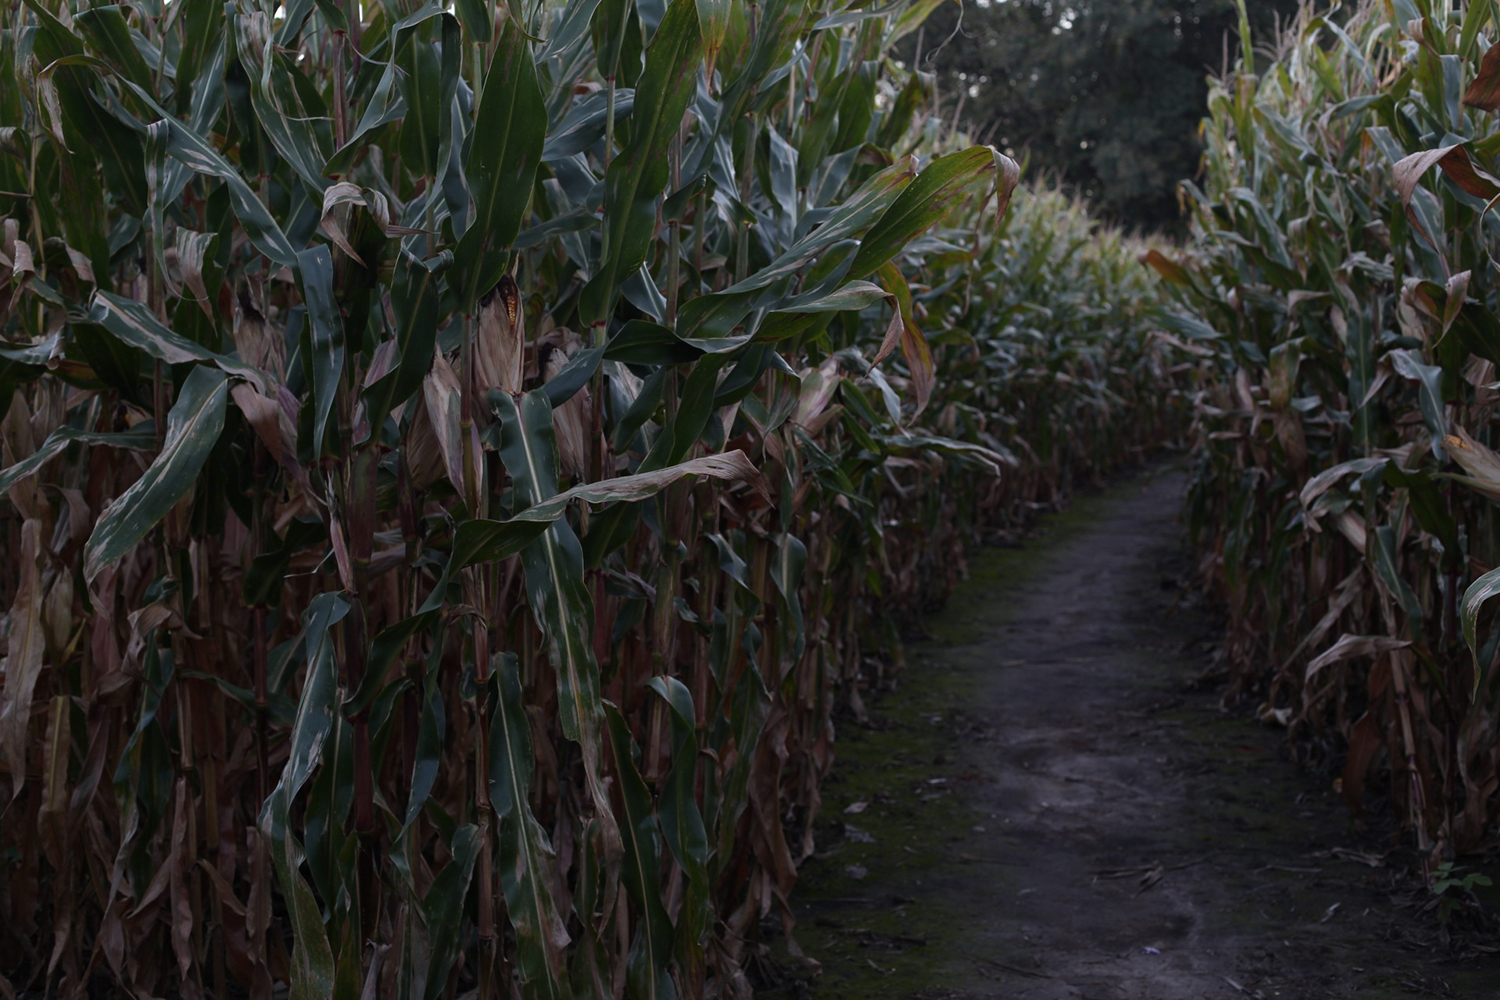 The Creepiest Corn Mazes